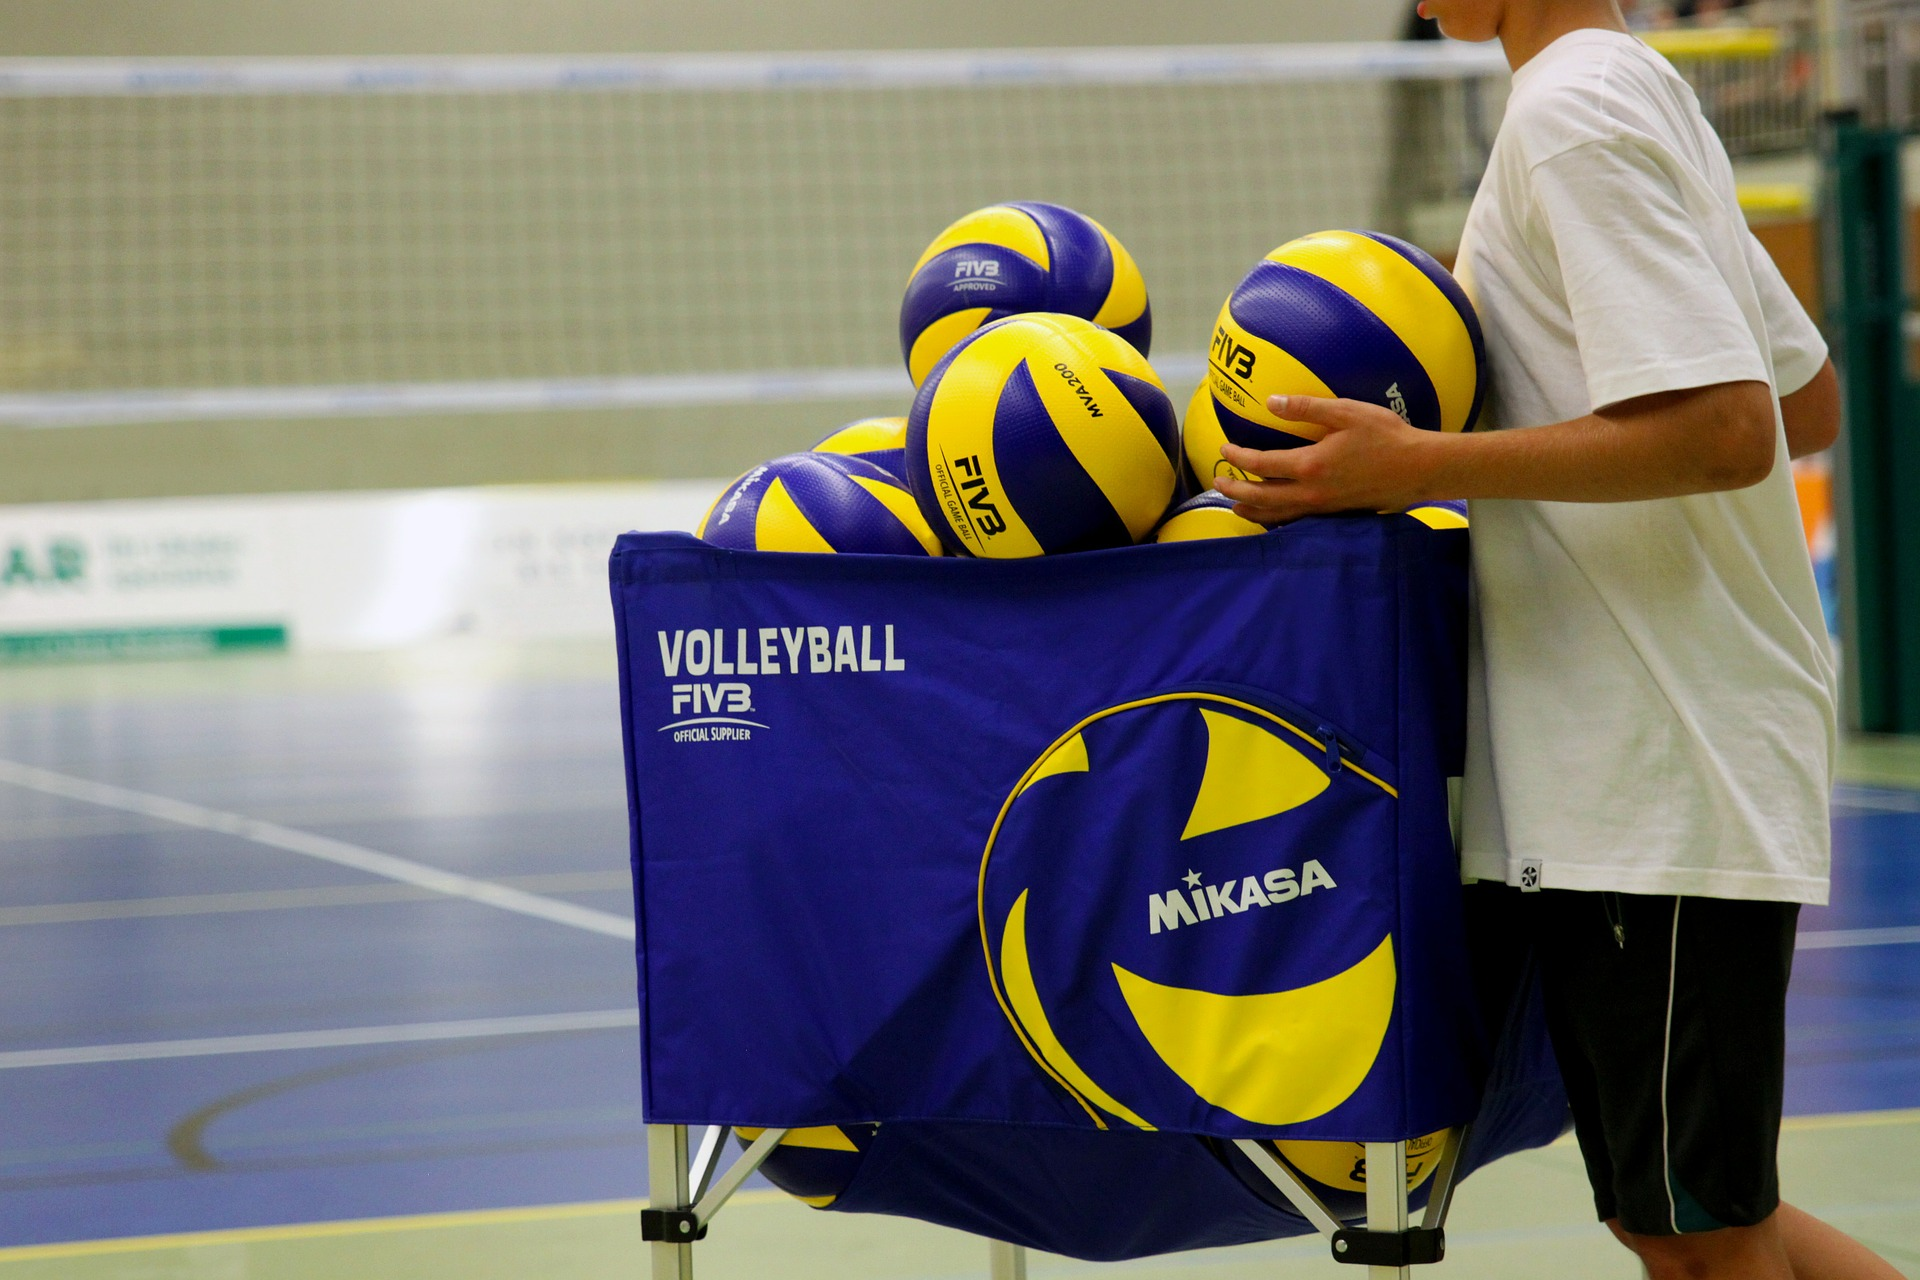 volleyball-520081_1920